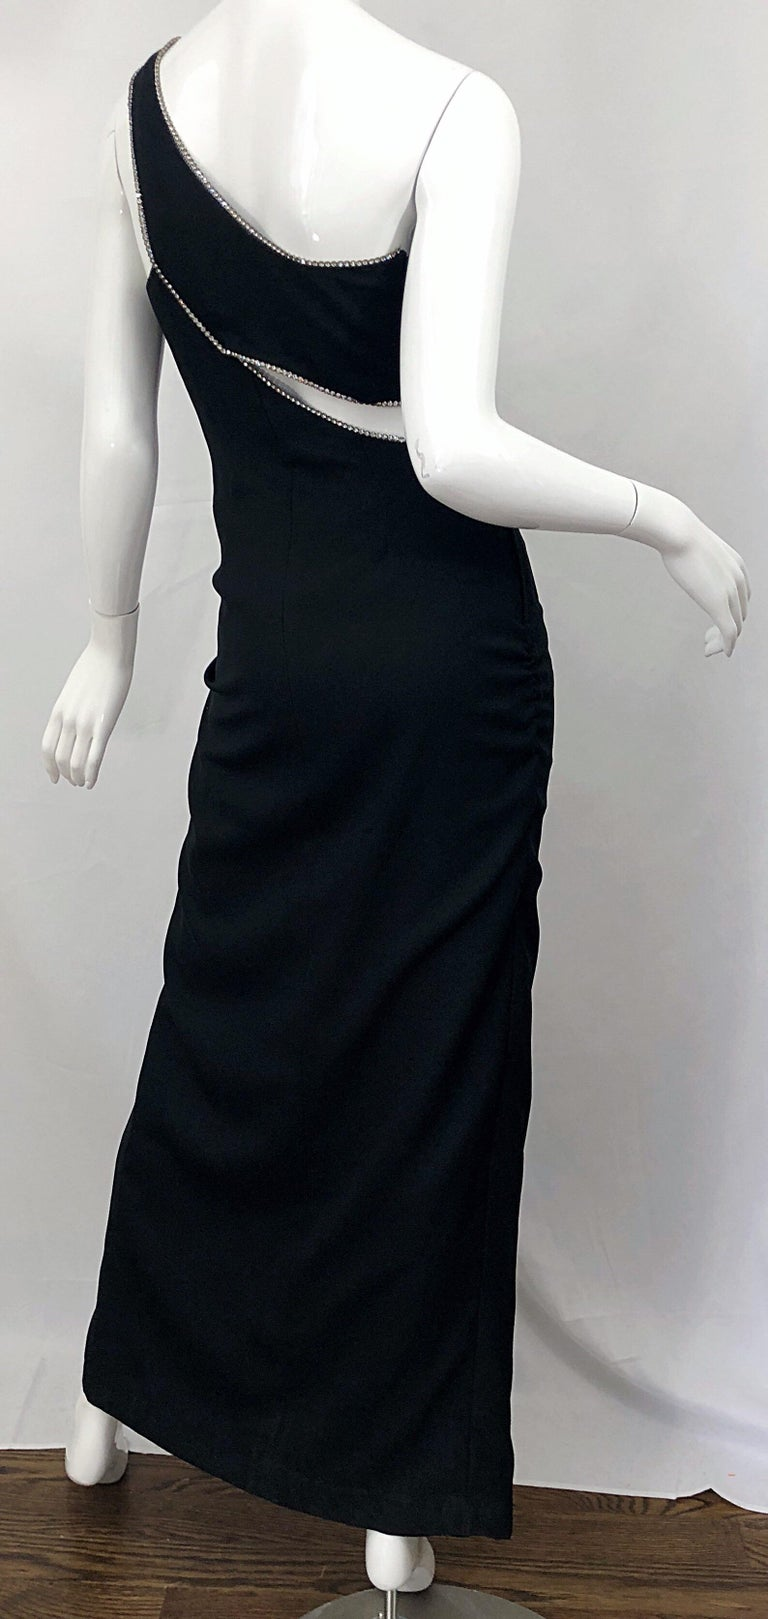 Women's Sexy 1990s Size 6 / 8 Black Crepe Rayon + Rhinestones One Shoulder Cut Out Gown For Sale